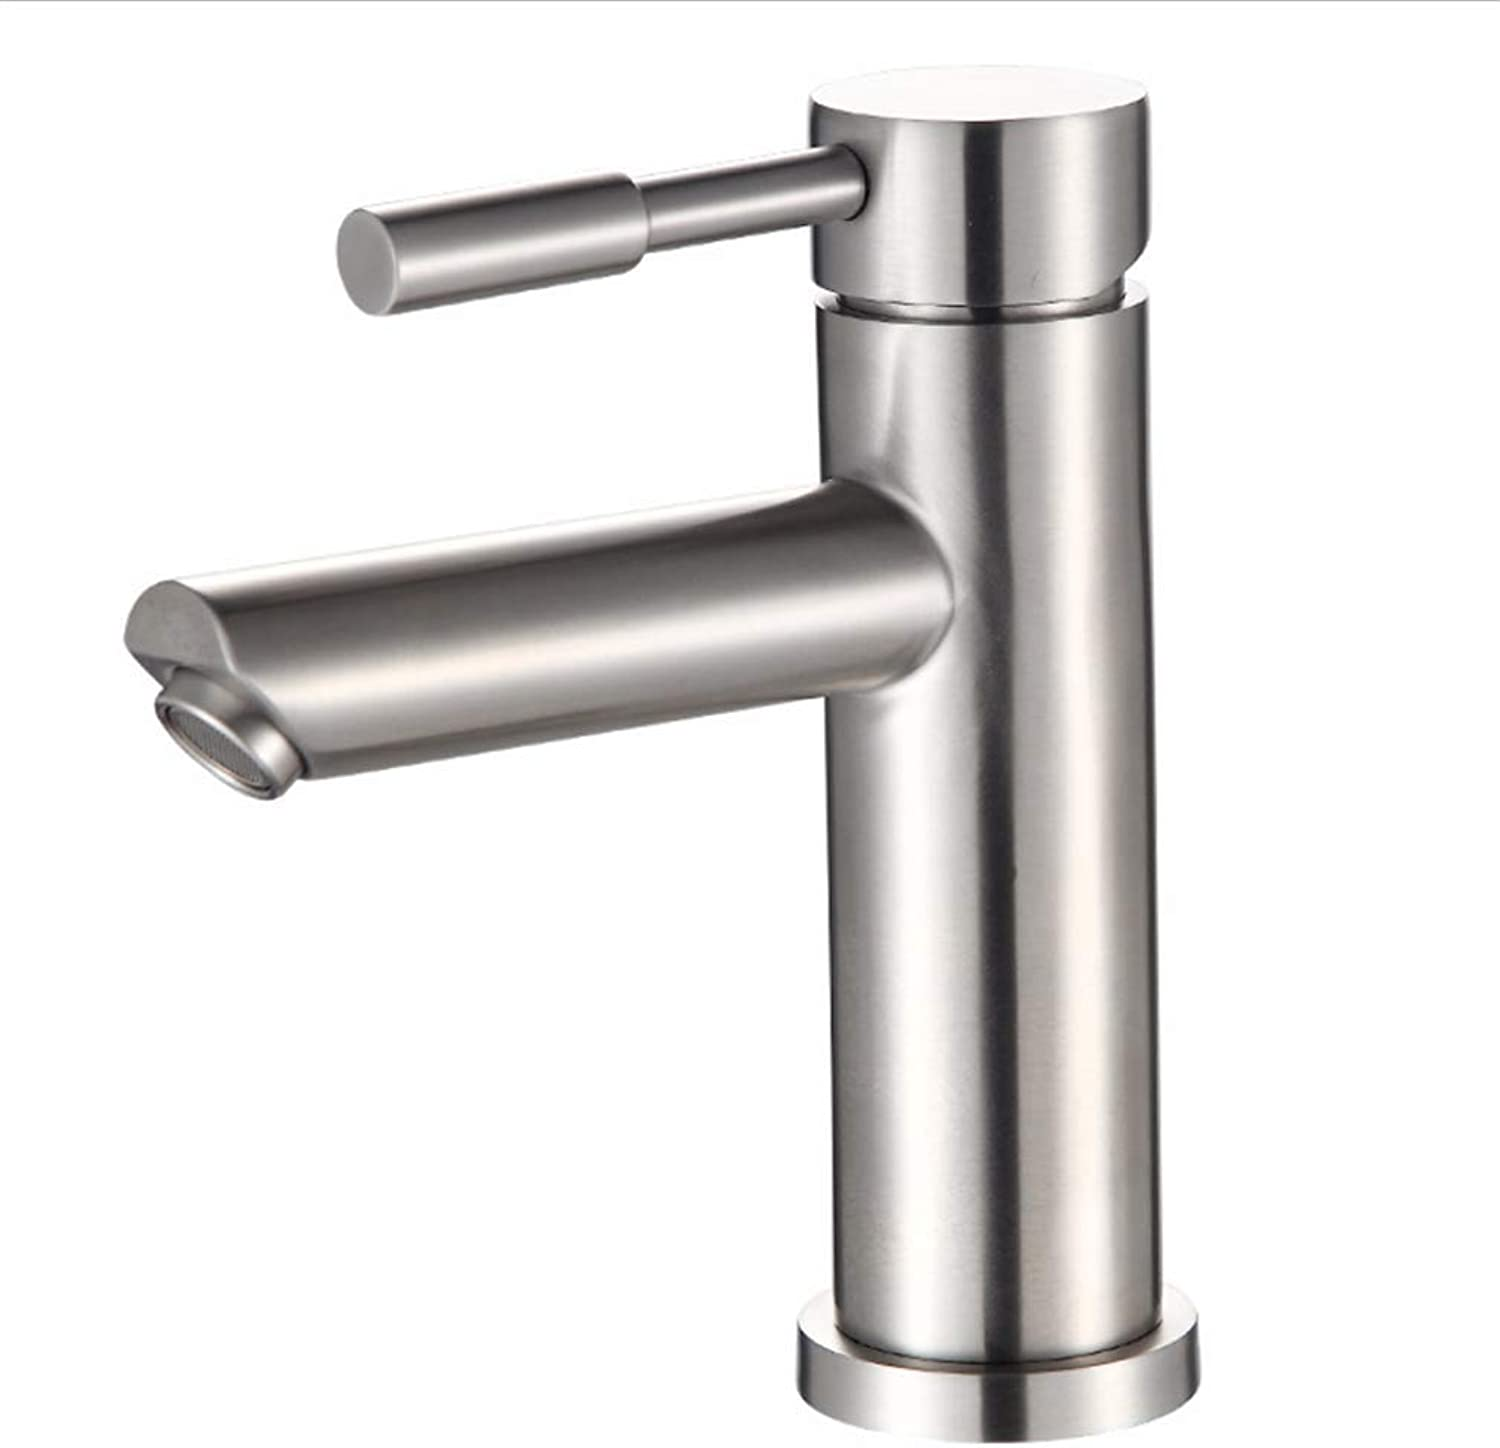 Basin Faucetglass Basin Straight Nozzle Single Hole 304 Stainless Steel Hot and Cold Basin, Faucet Water Mixing Valve Washbasin Faucet